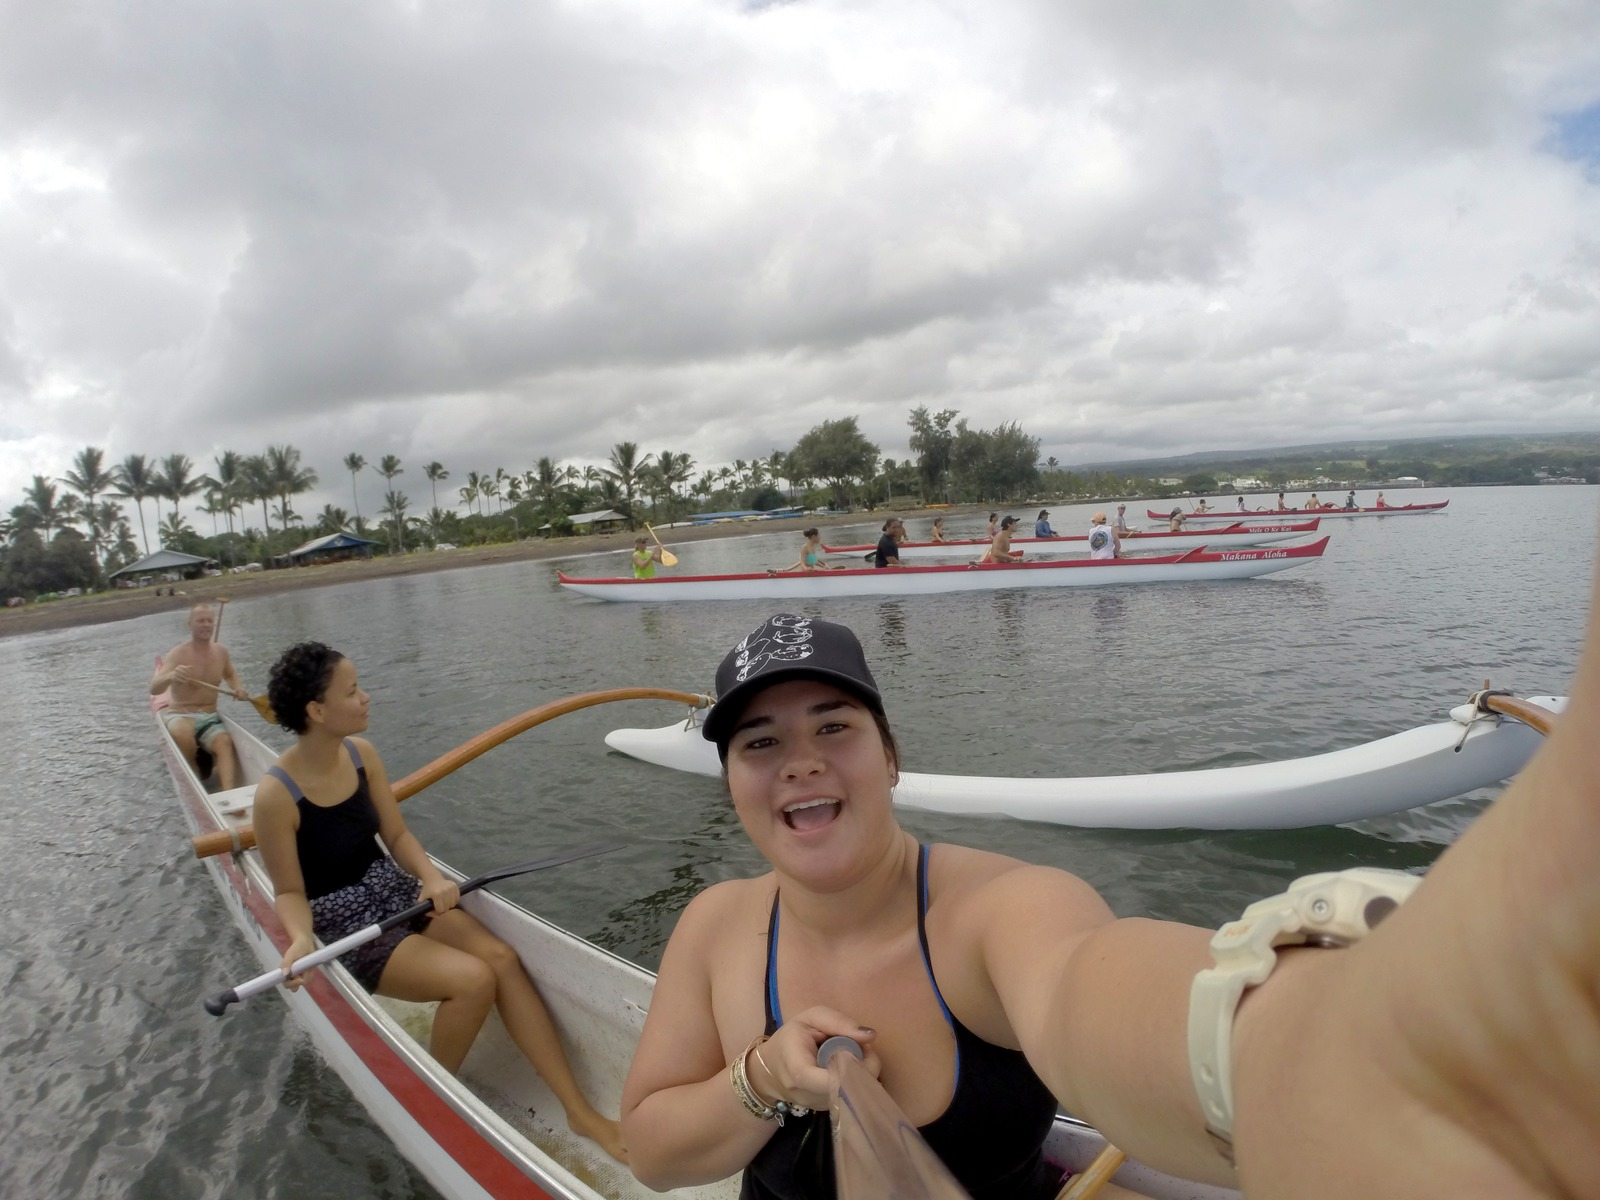 Student taking selfie on canoe.